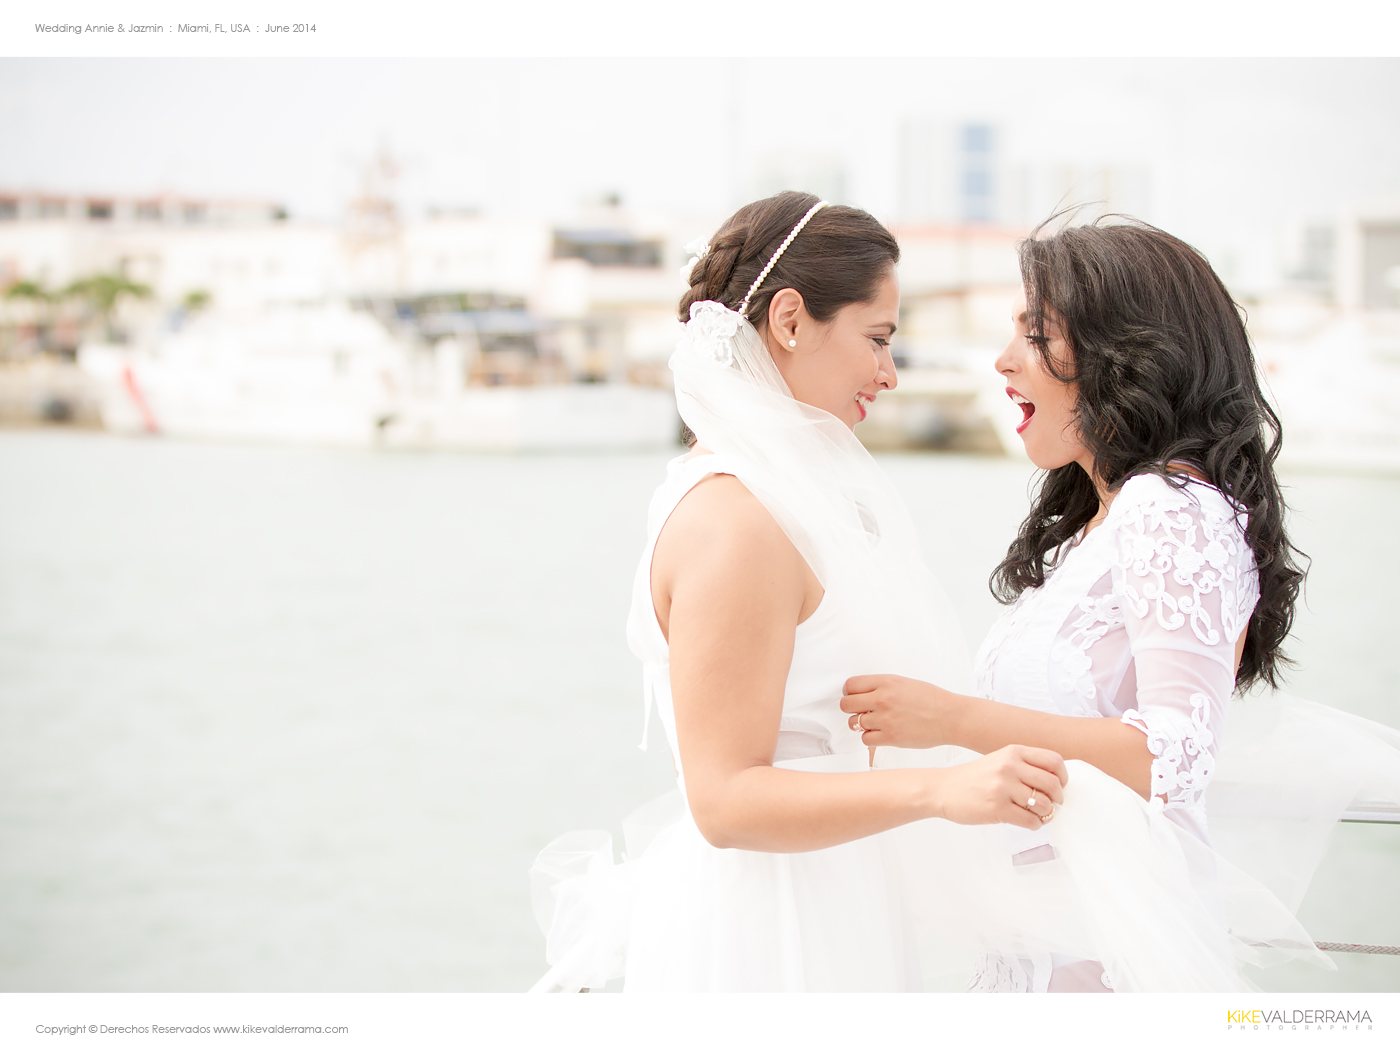 wedding-annie&Jazmin2014-095-12.jpg